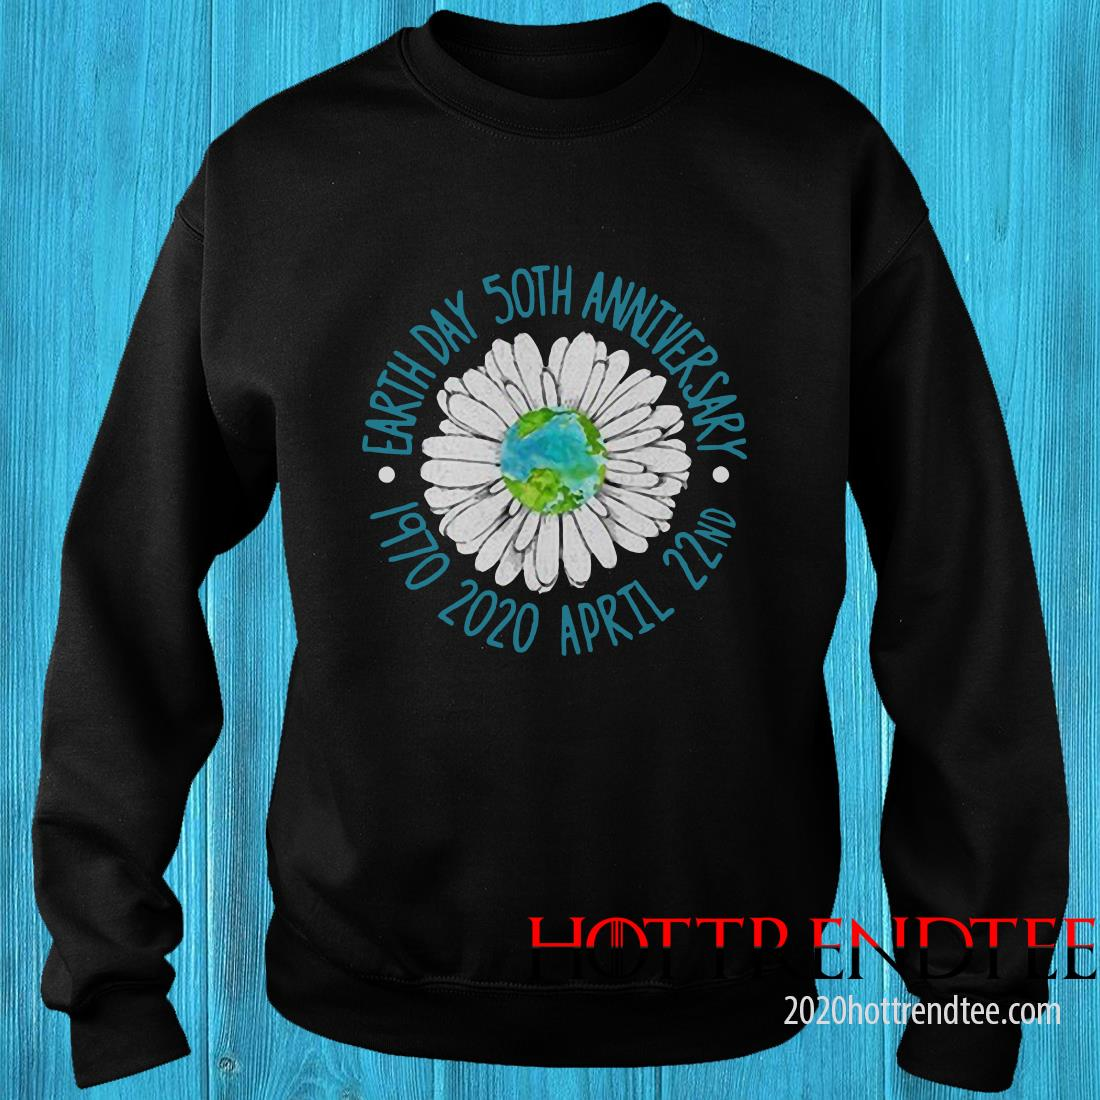 Earth Day 50Th Anniversary April 22Nd Sweatshirt